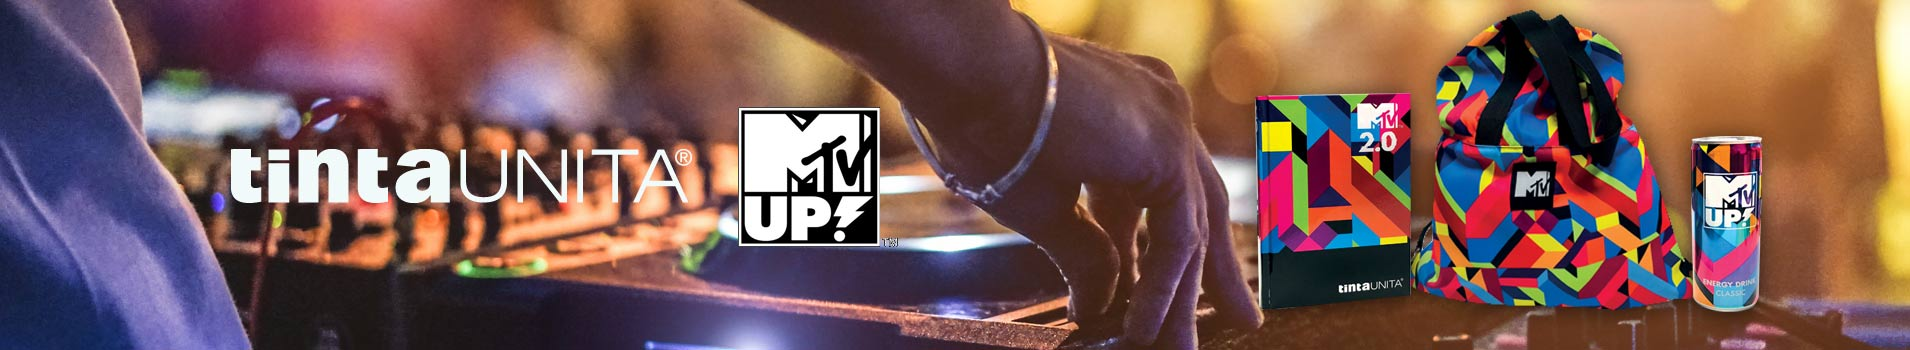 Agenda TintaUNITA - MTV up